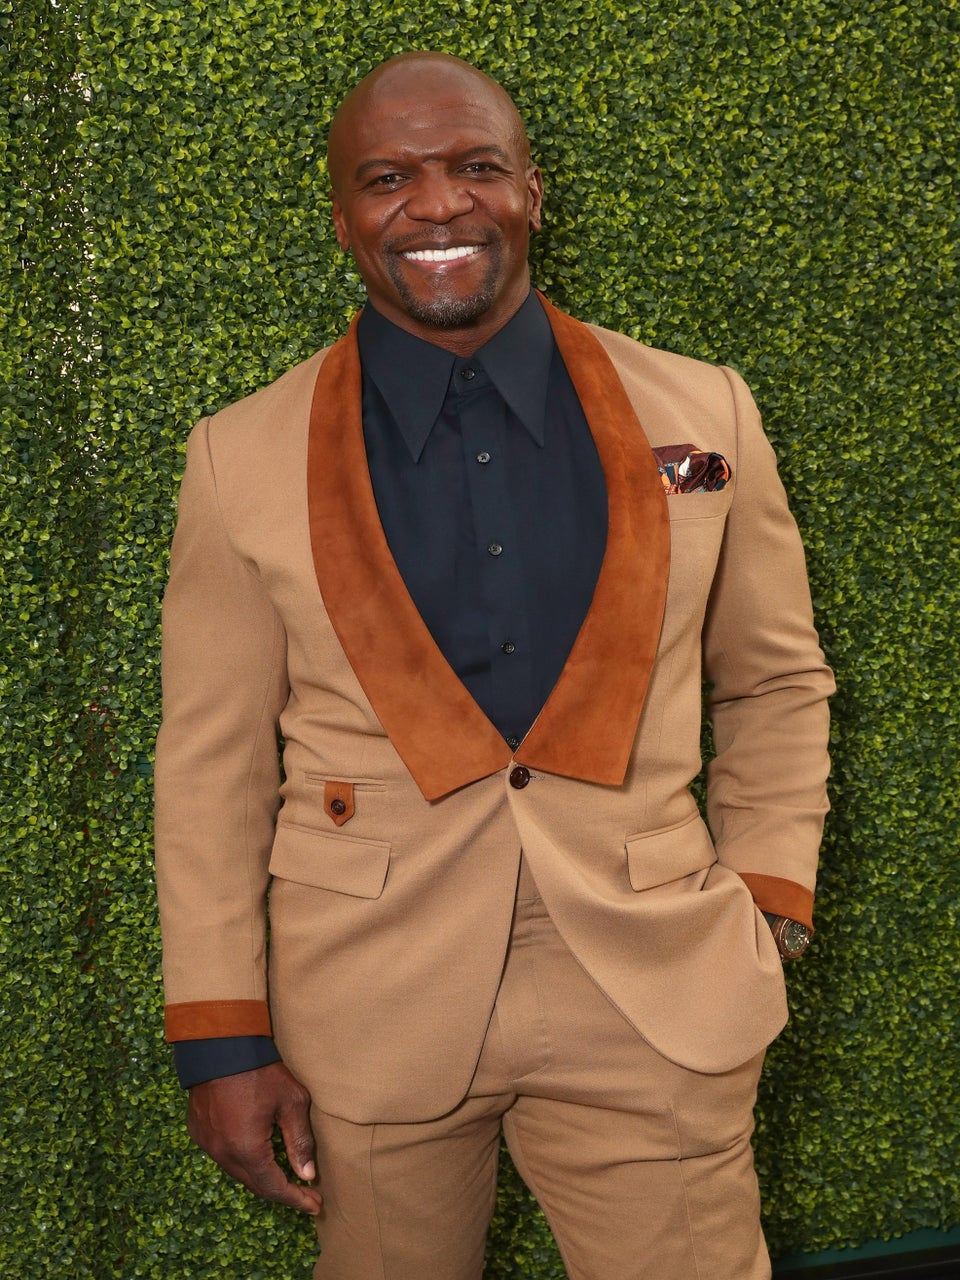 In Support Of Terry Crews And Other Men Who've Been Sexually Assaulted — We Need To Stop Gendering Abuse